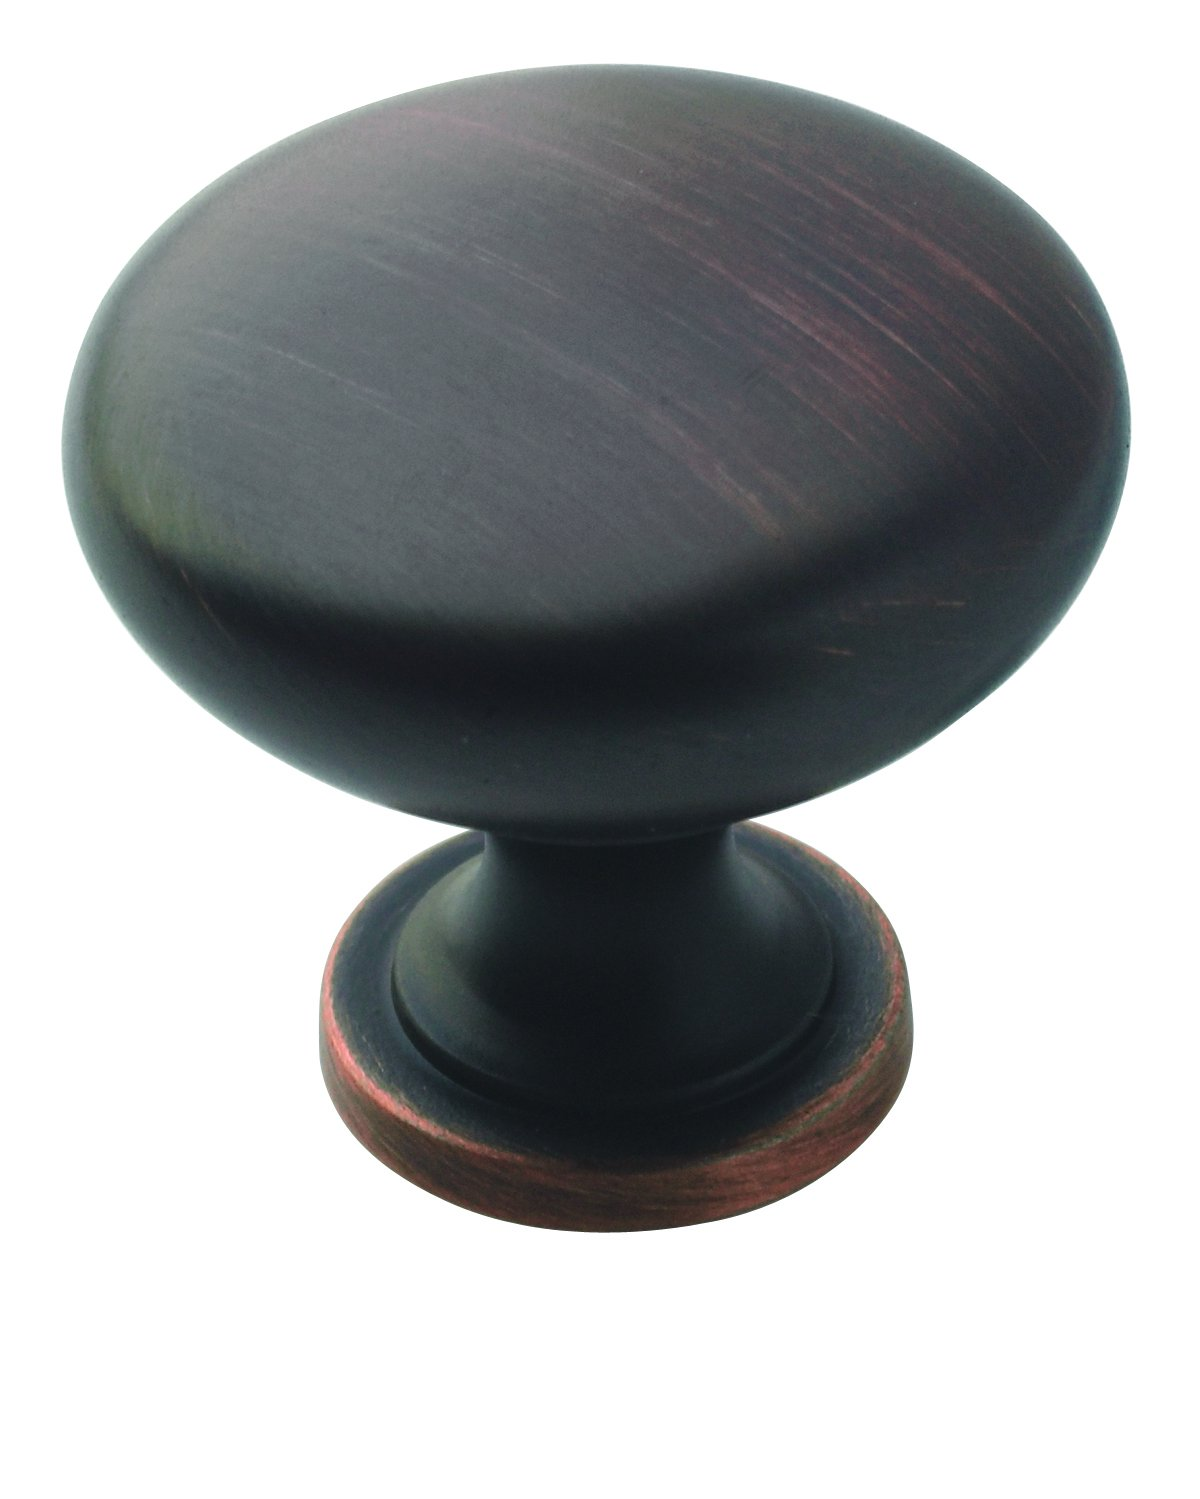 Allison Value 1-1/4 in (32 mm) Diameter Oil-Rubbed Bronze Cabinet Knob - 10 Pack - 10BX53005ORB